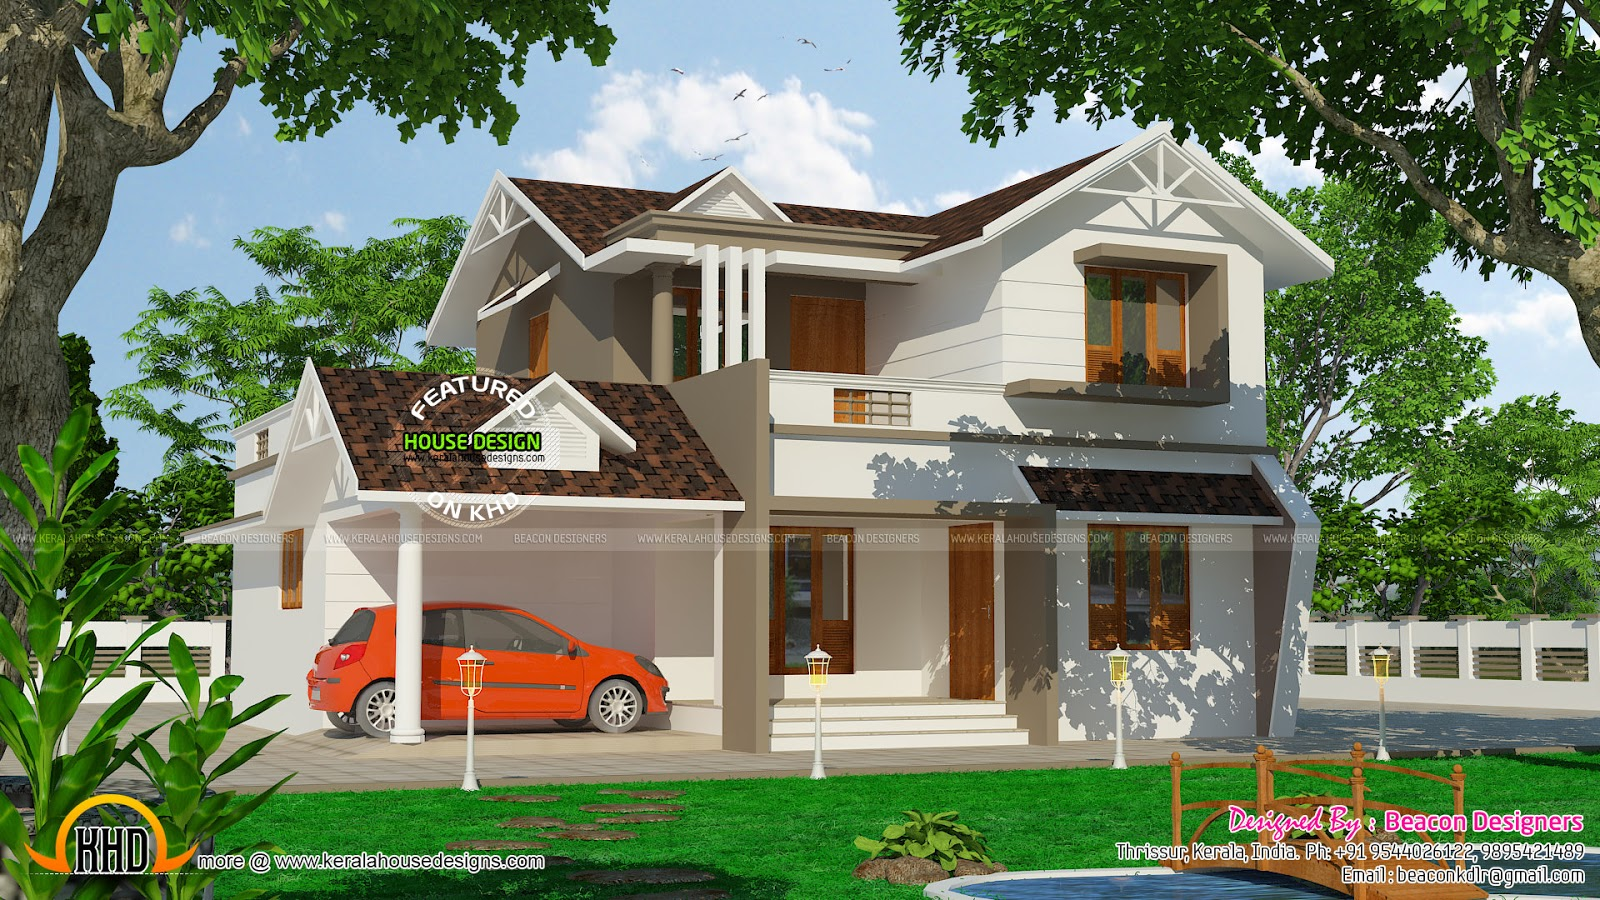 First floor 800 sq ft total area 2945 sq ft no of bedrooms 3 no bathrooms 4 no of floors 2 design style modern house details